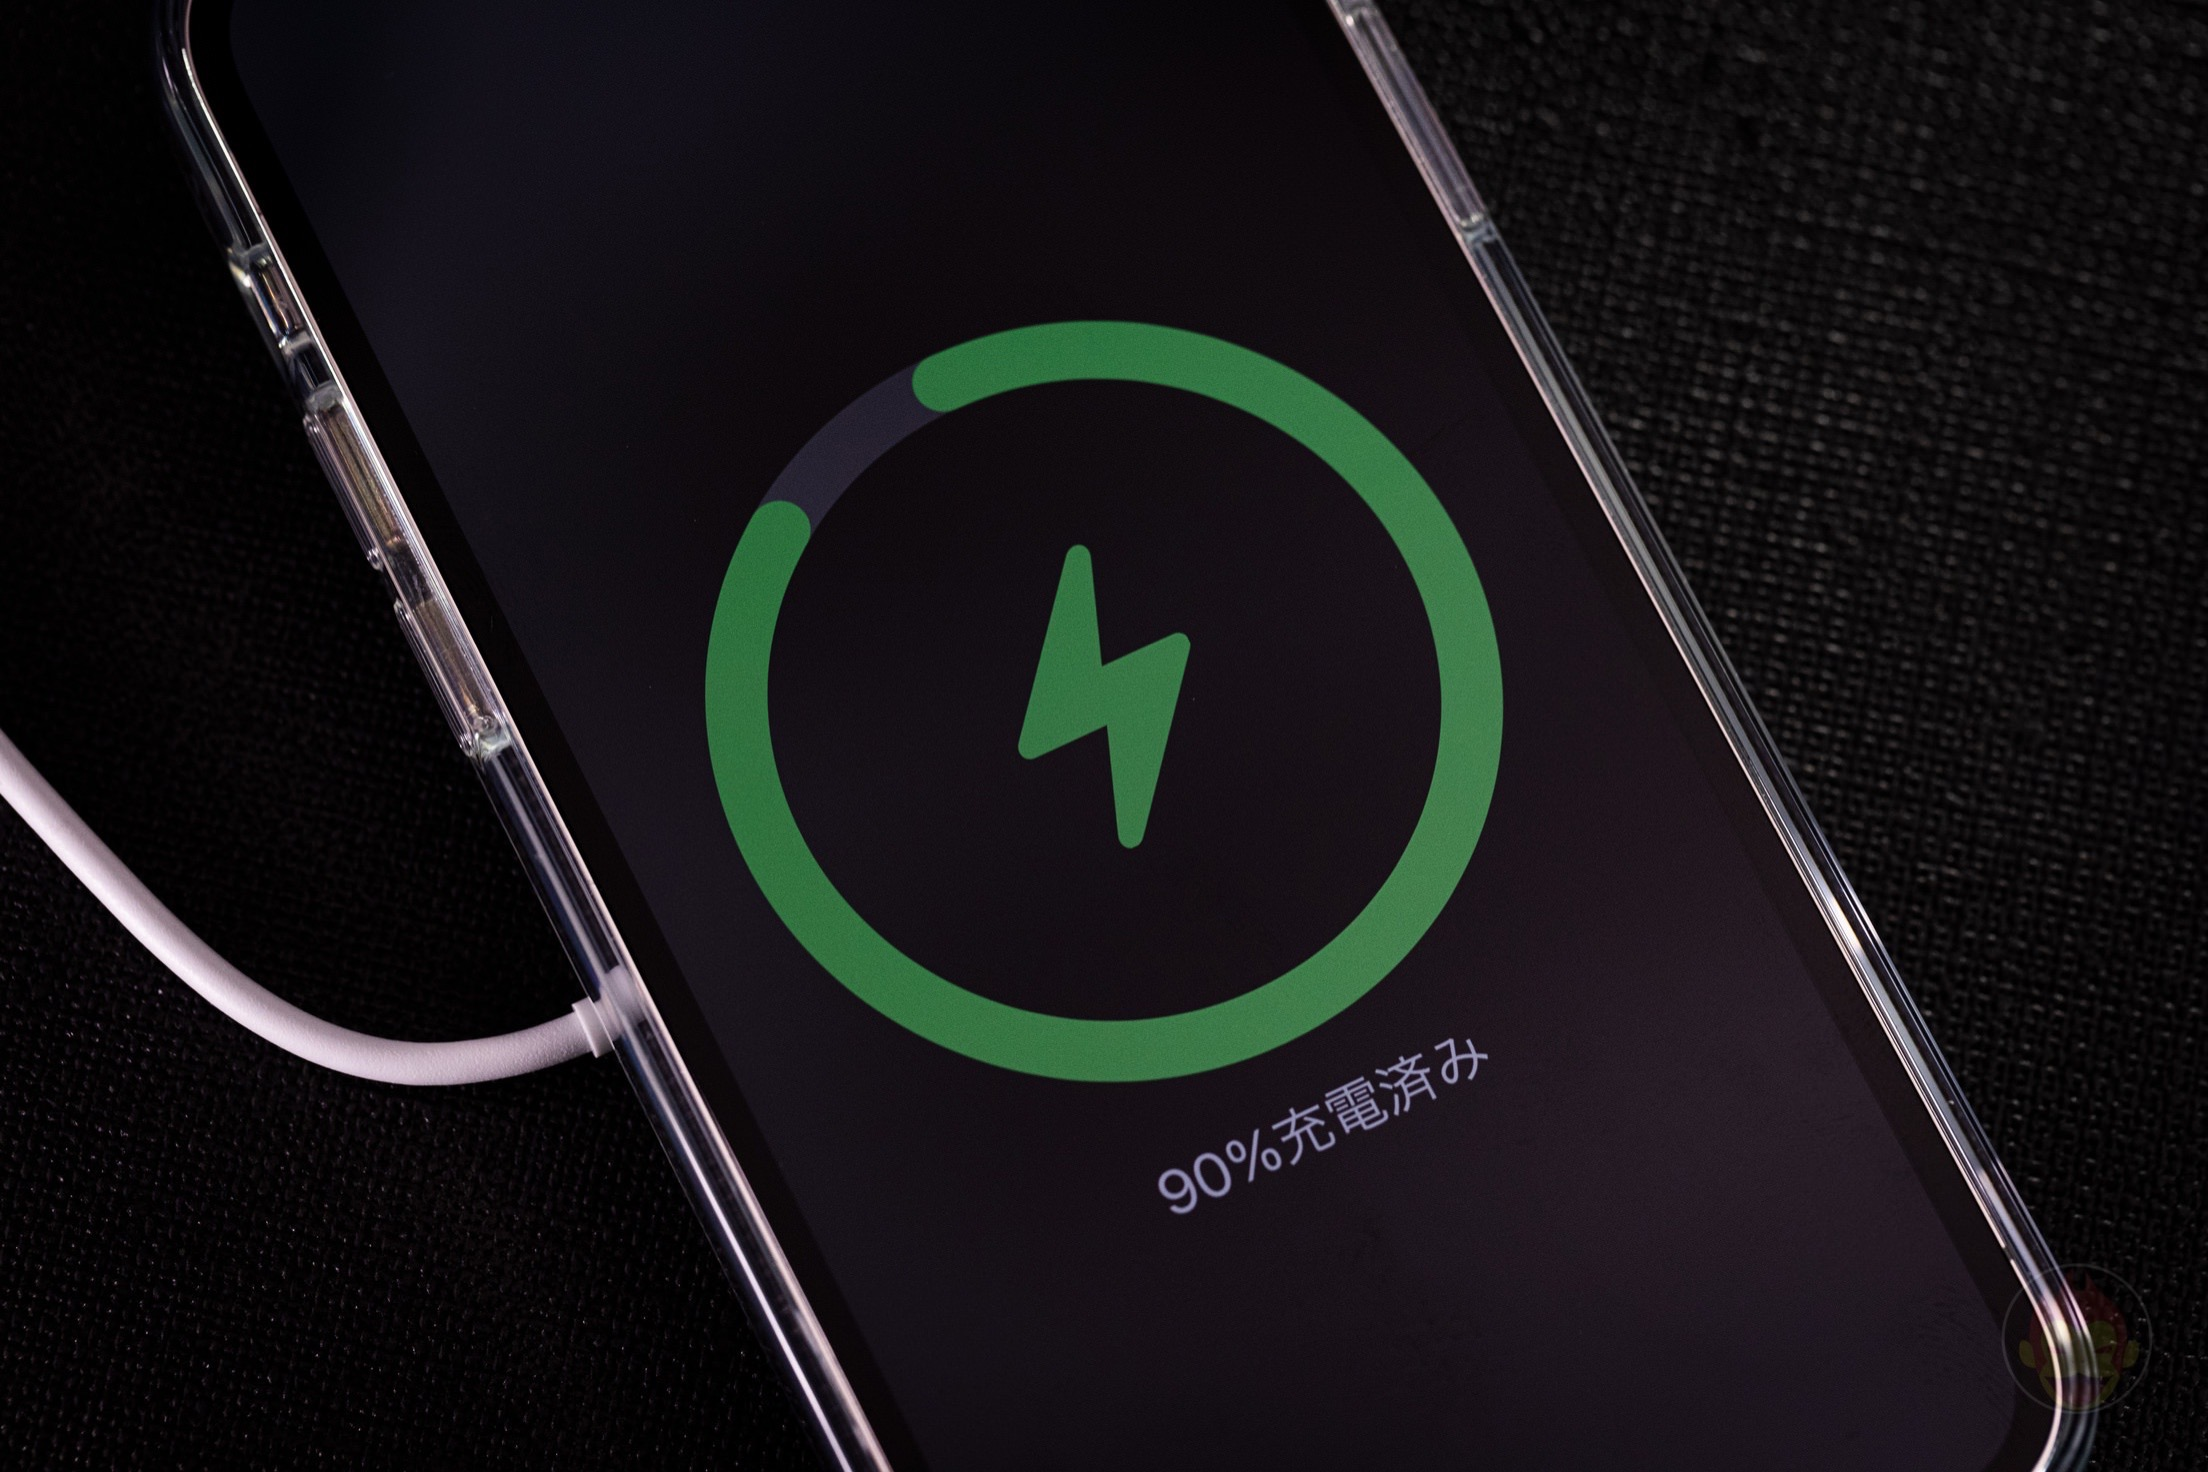 Charging-iPhone12Pro-with-MagSafe-01.jpg